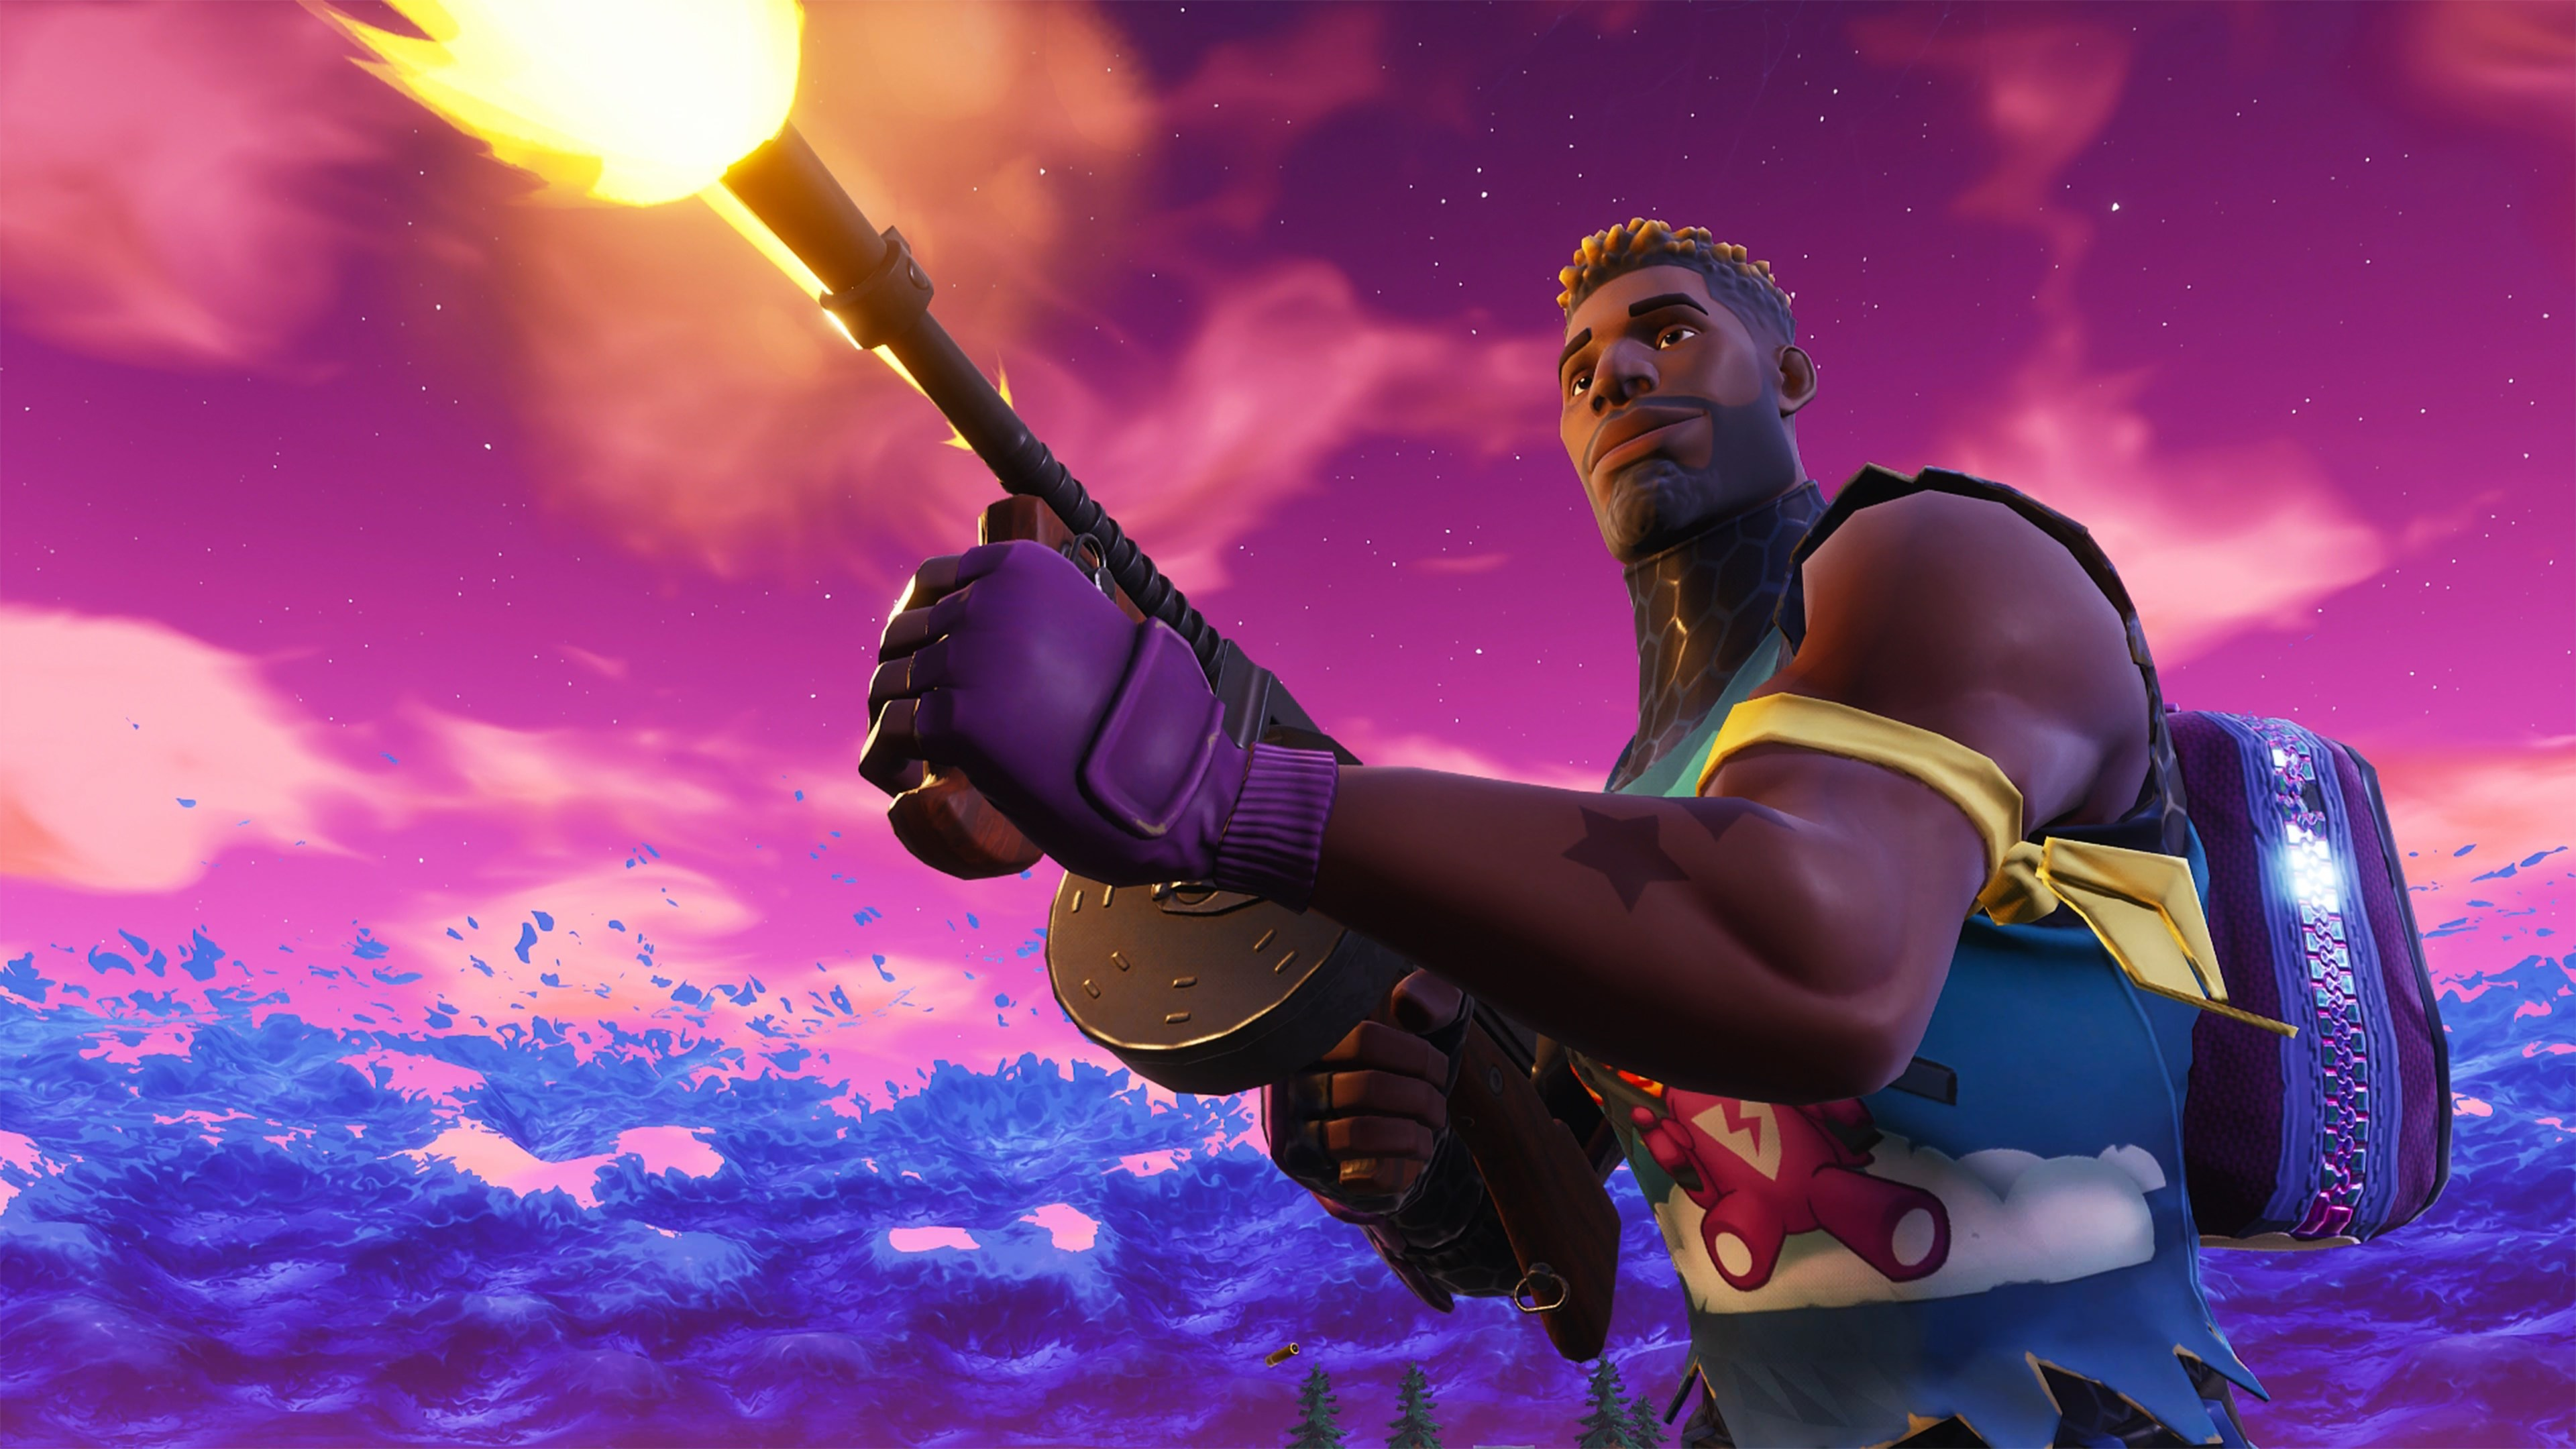 fortnite battle royale mobile 4k - fortnite wallpaper 4k season 9